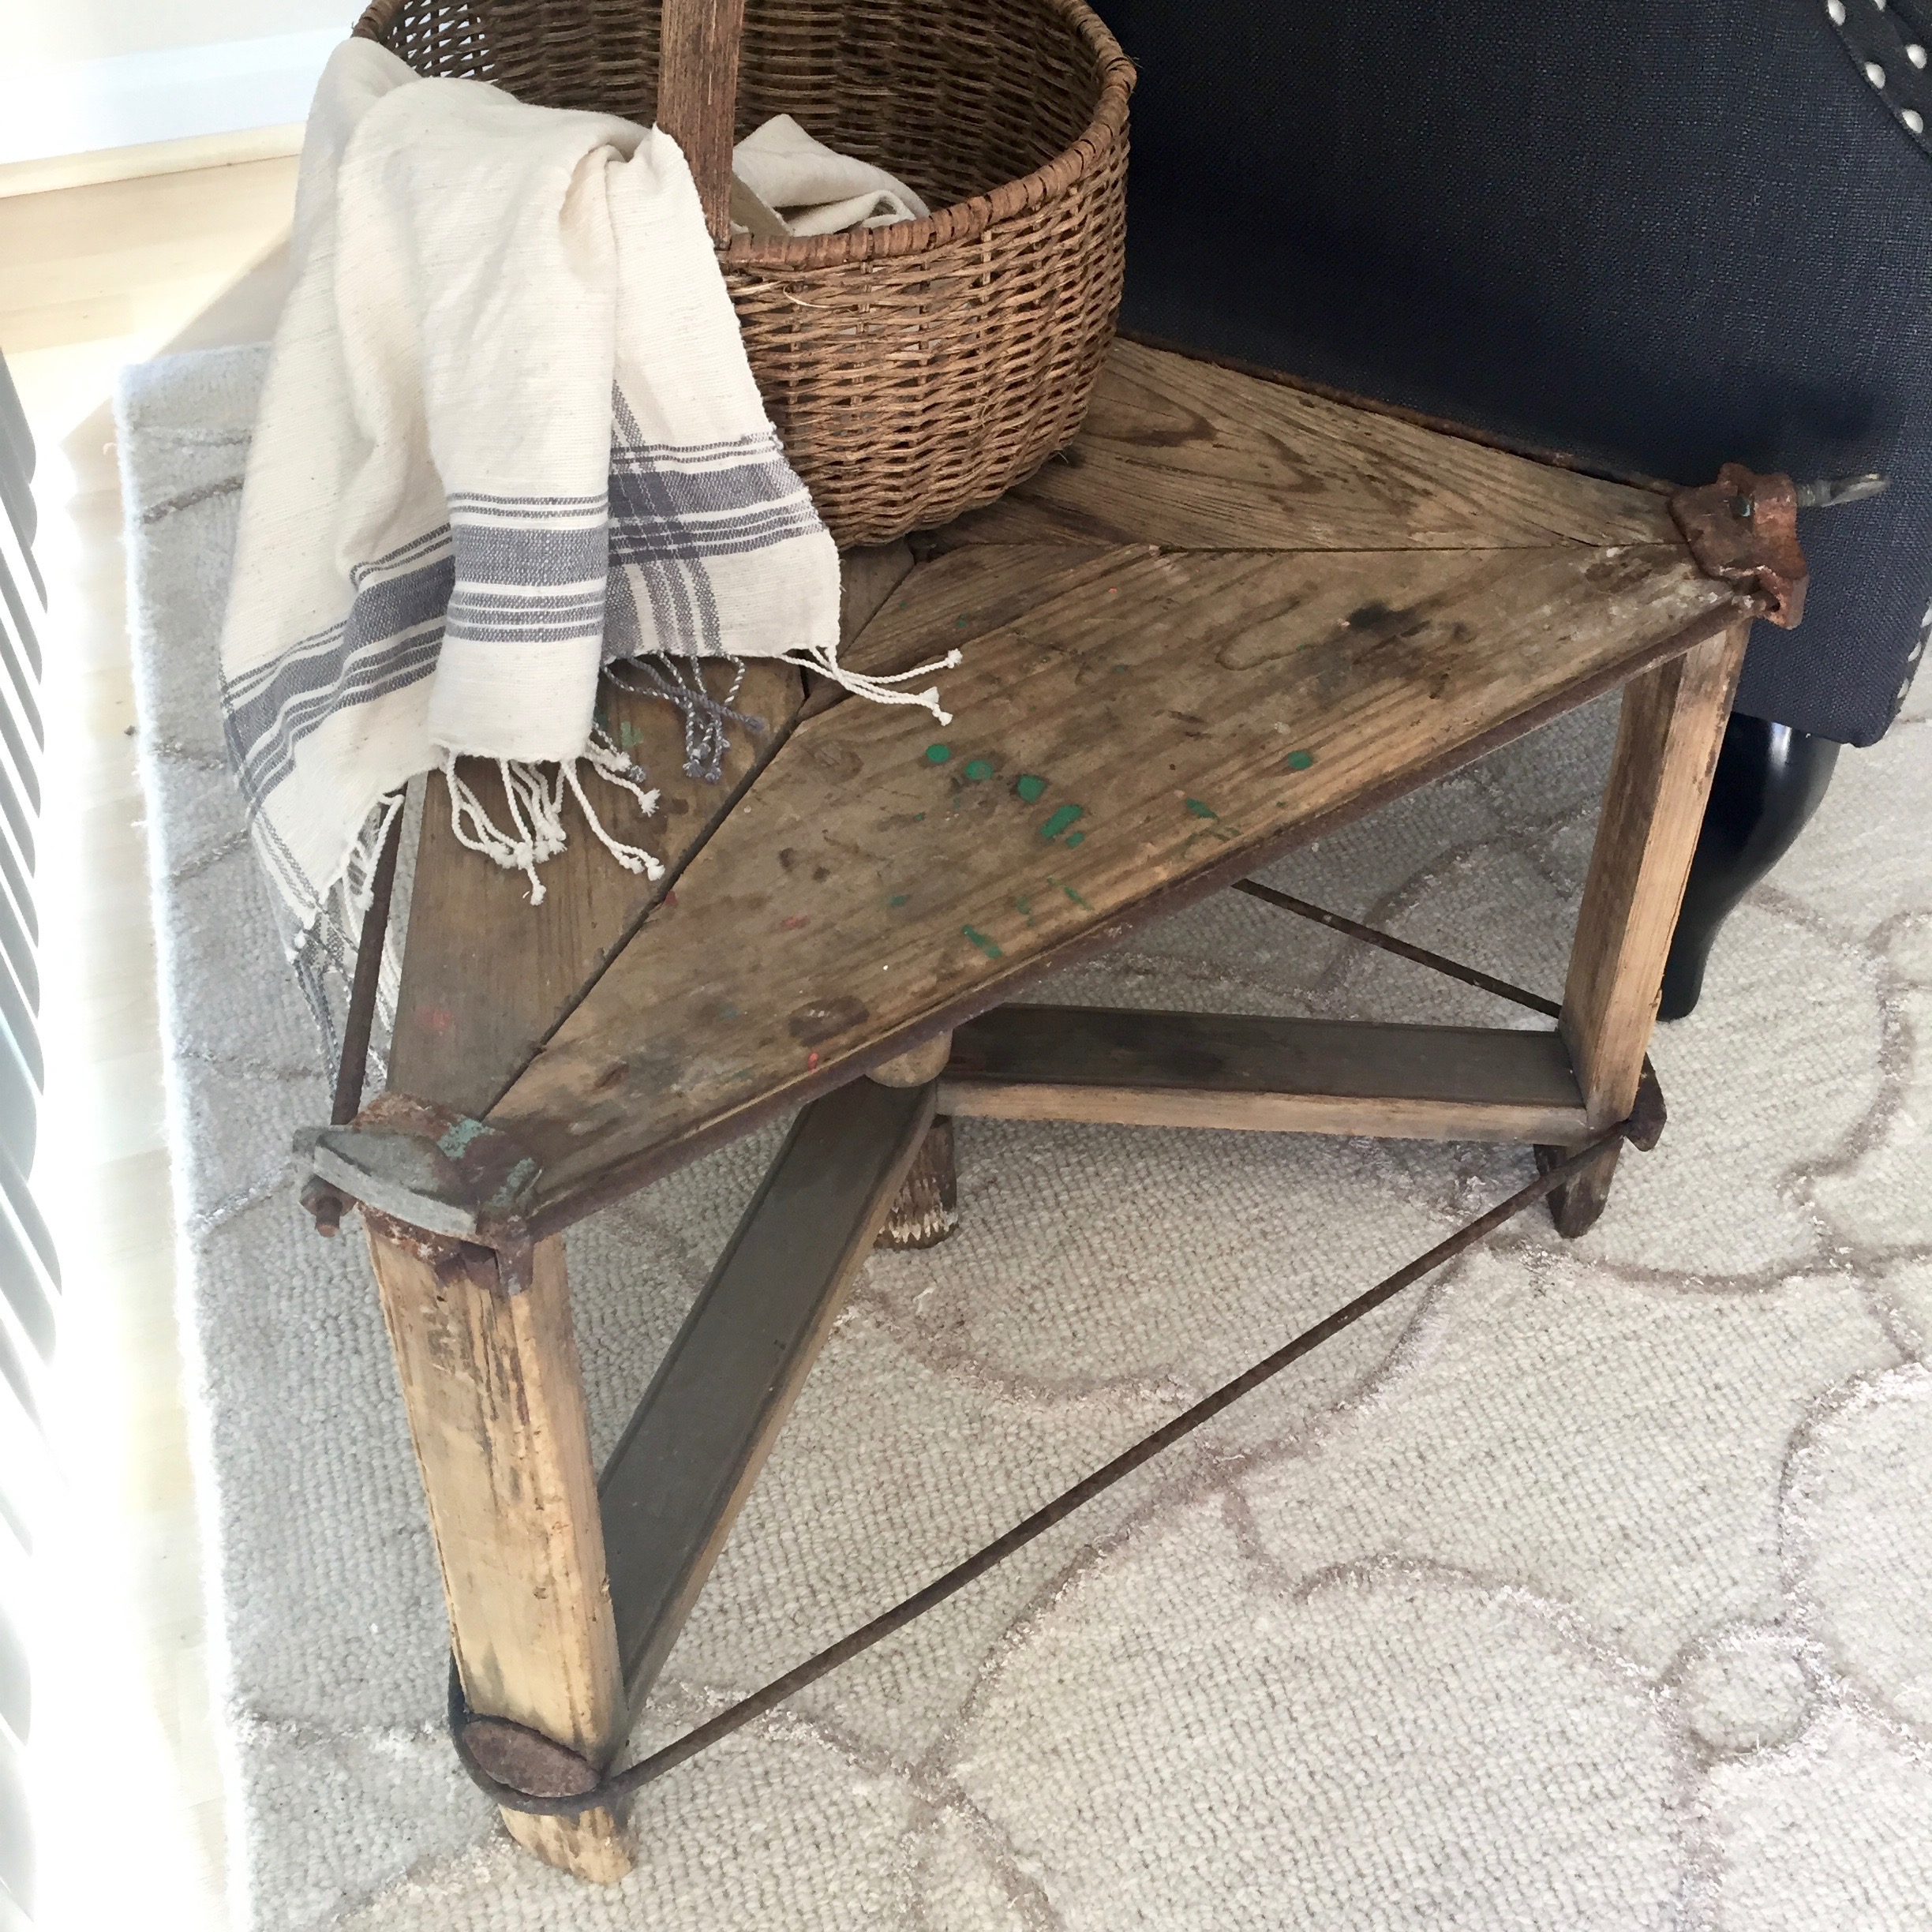 Branch out from traditionally side tables with unusual options, like this washtub stand.